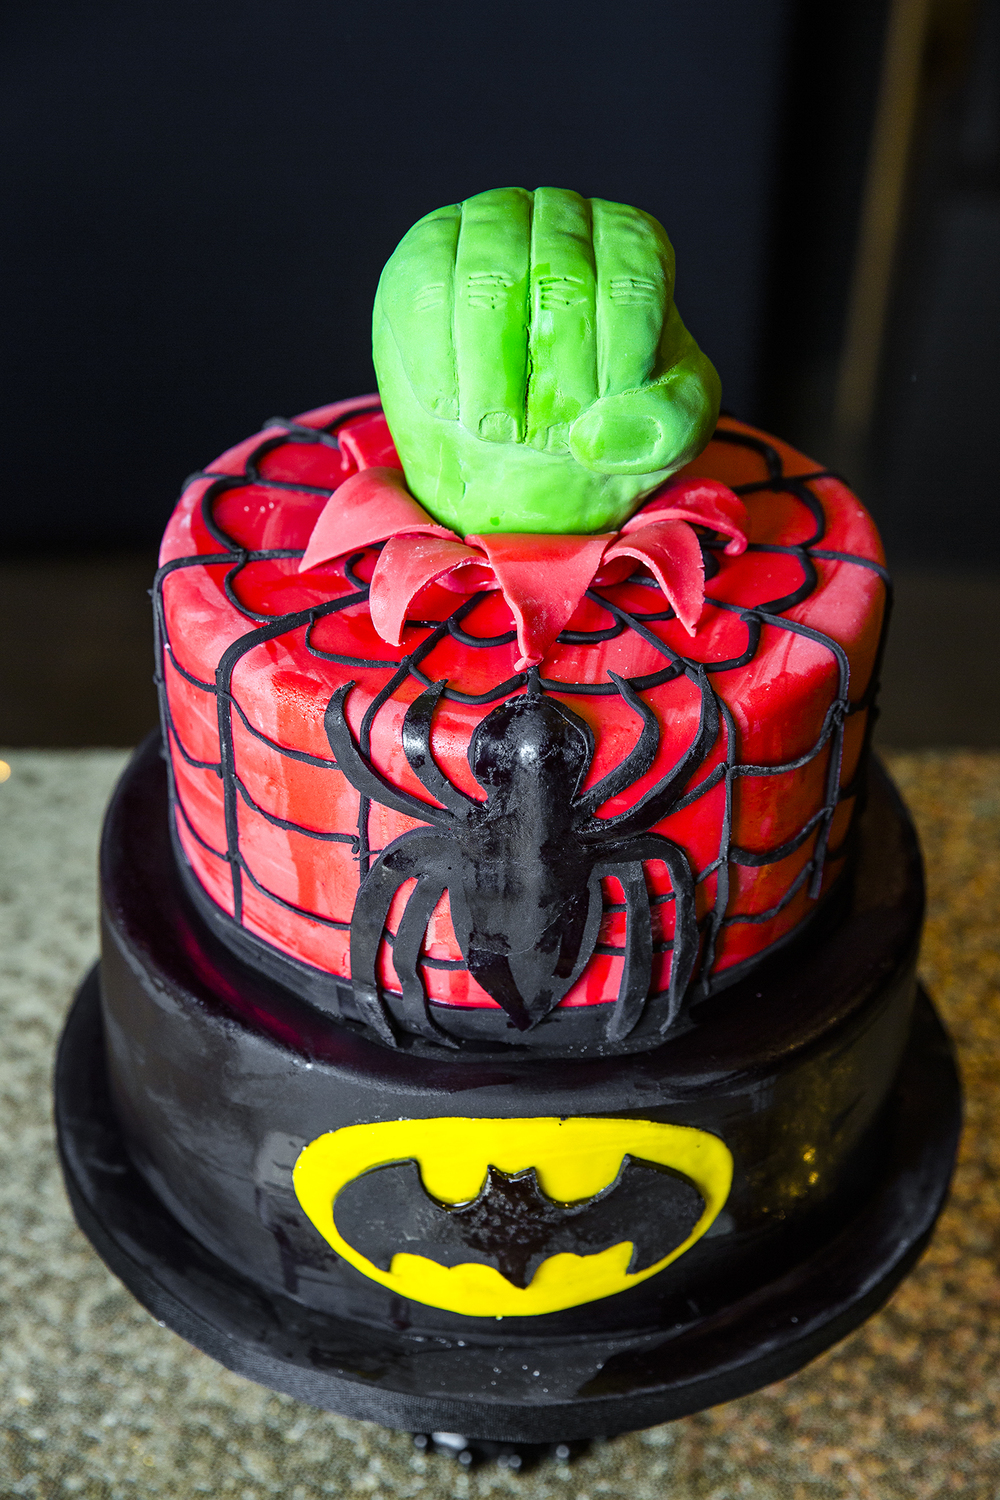 superhero cake, hulk, spiderman, batman, creative wedding cakes